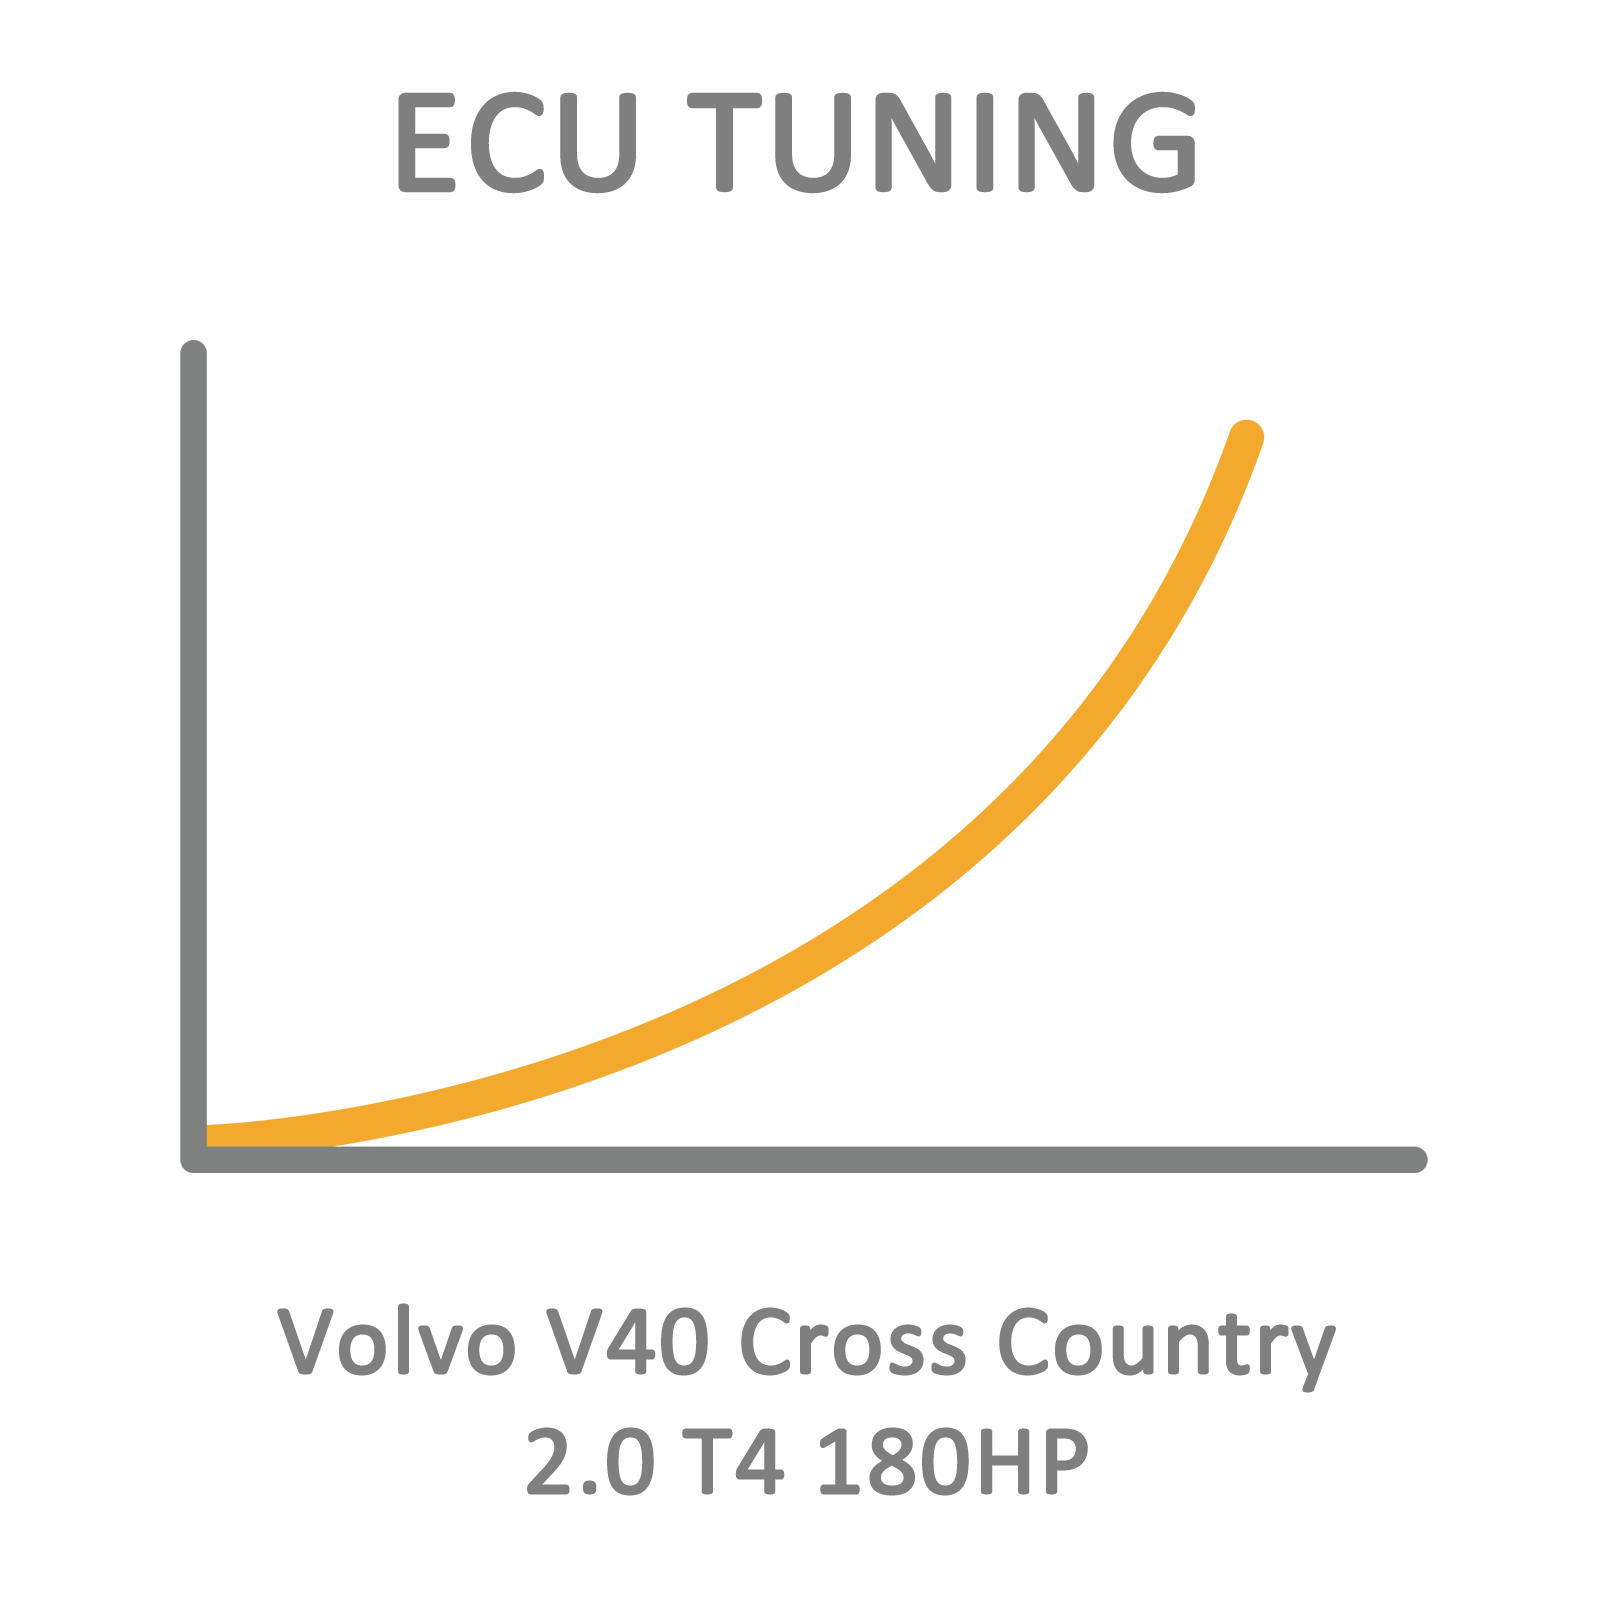 Volvo V40 Cross Country 2 0 T4 180hp Ecu Tuning Remapping